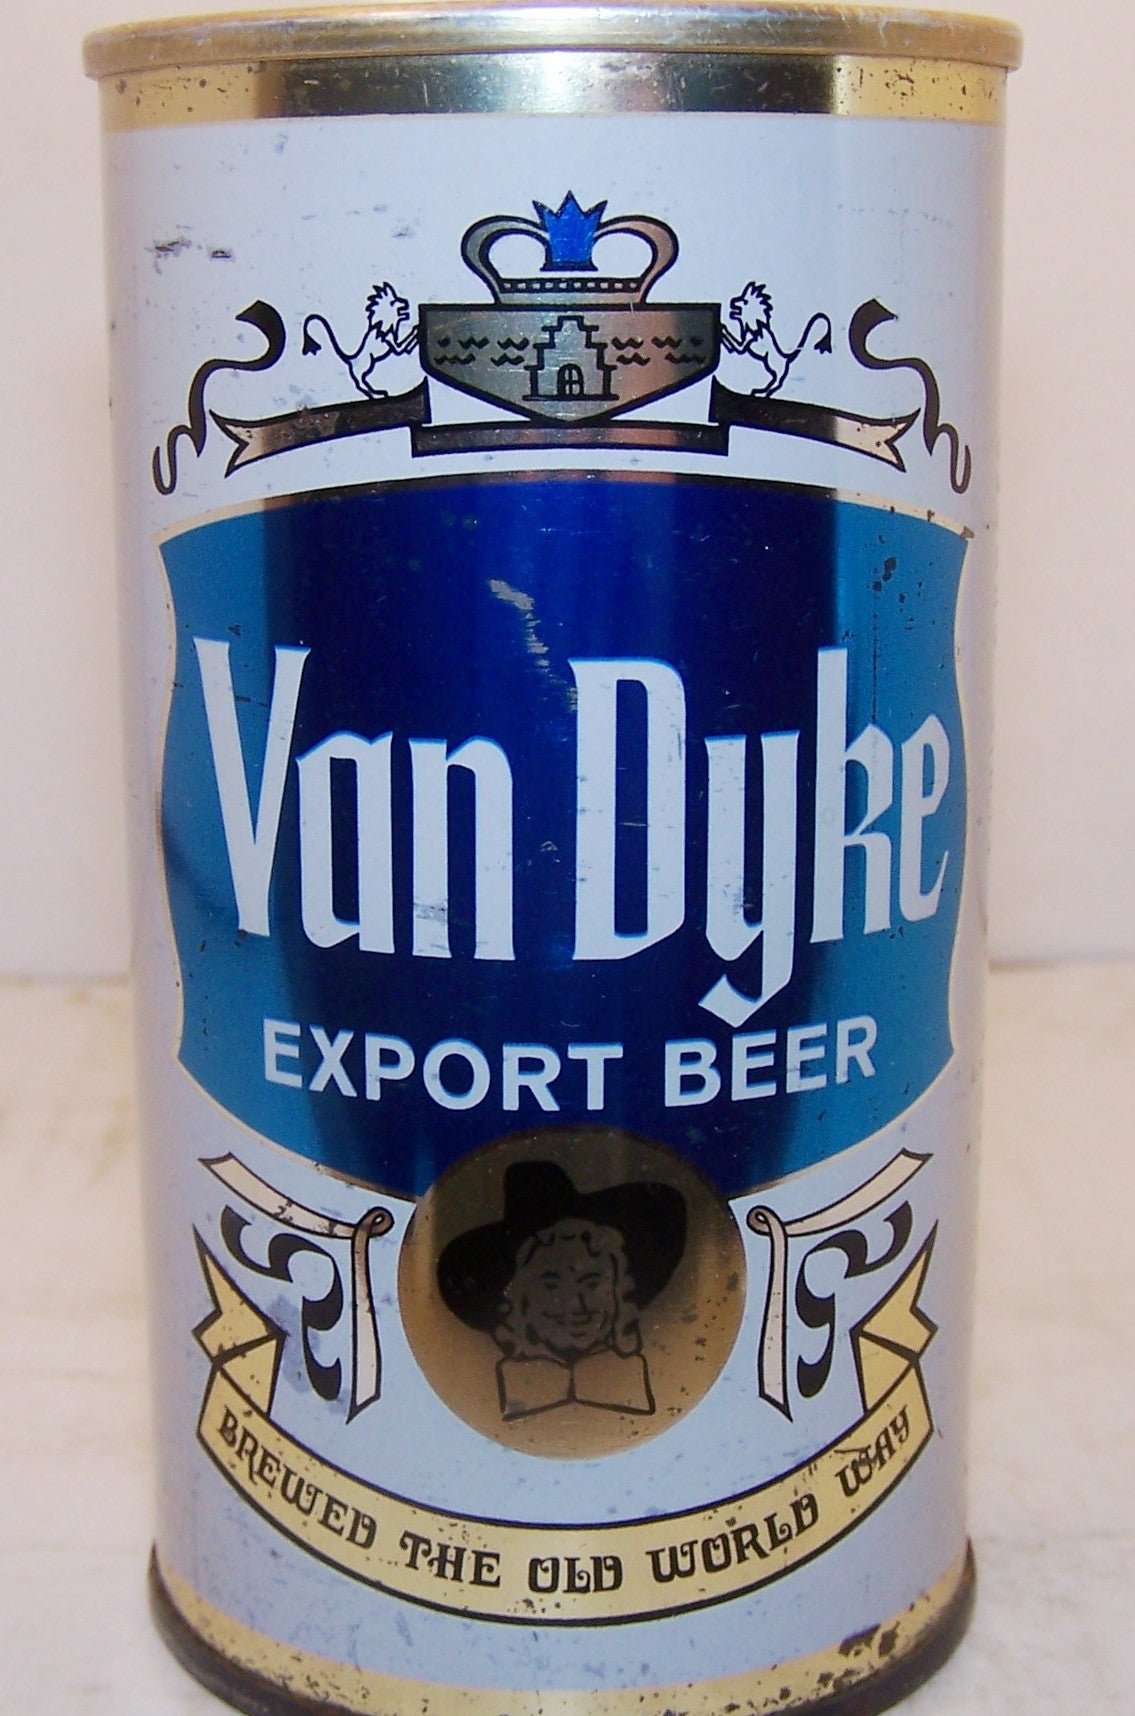 Van Dyke Export Beer, USBC II 133-7 Grade 1- Sold 2/10/15